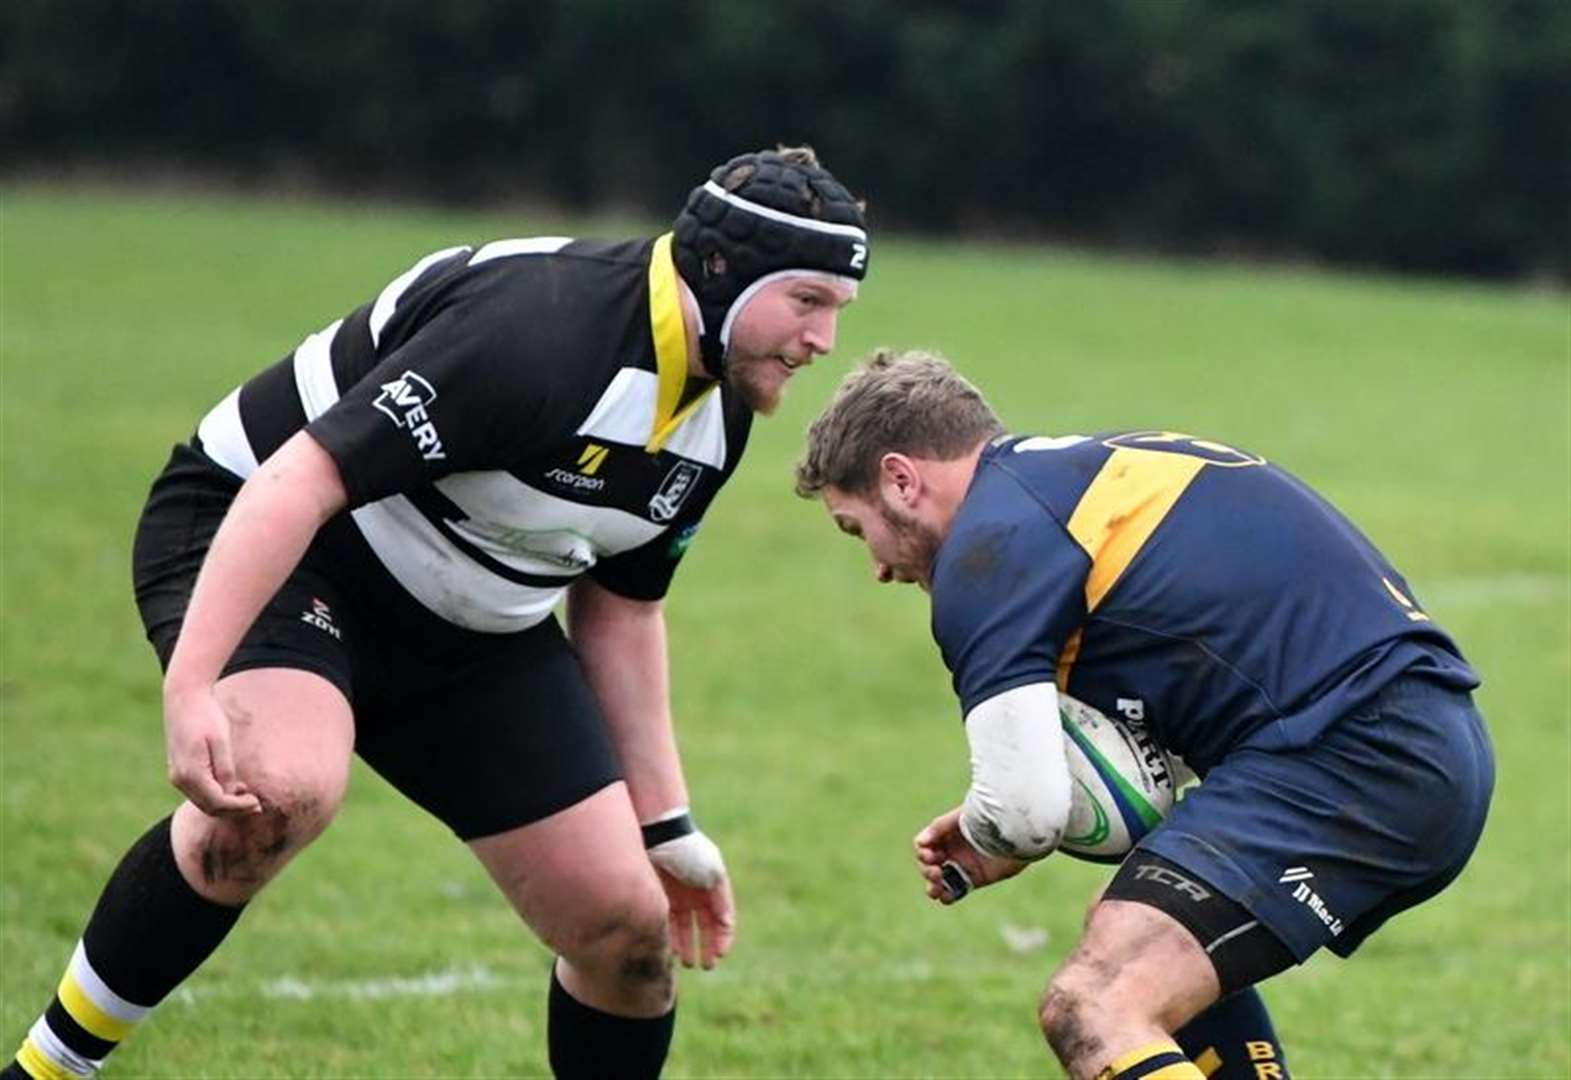 RUGBY UNION: Bourne bounce back with vital victory